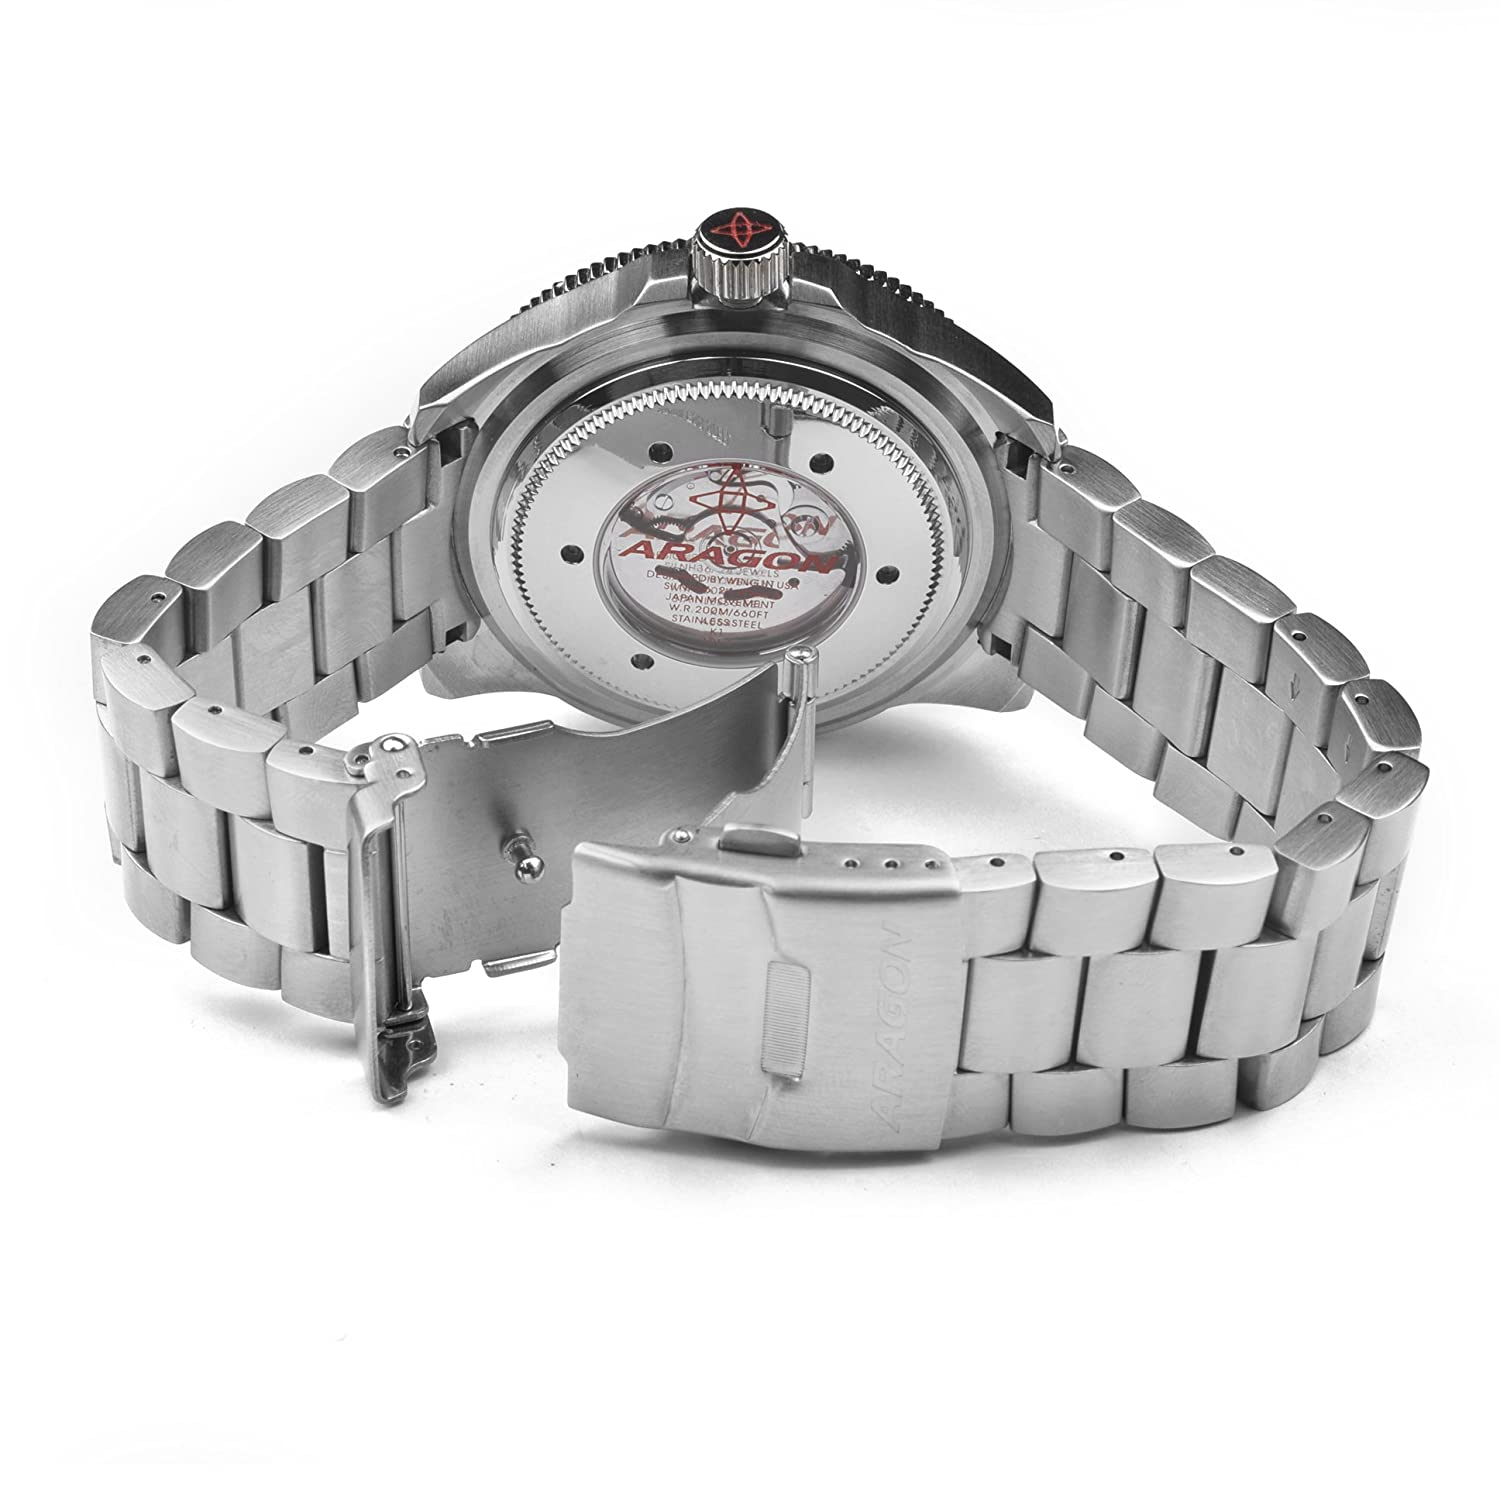 Amazon.com: Aragon A054PUR Divemaster Automatic 50mm: Wing Liang: Watches